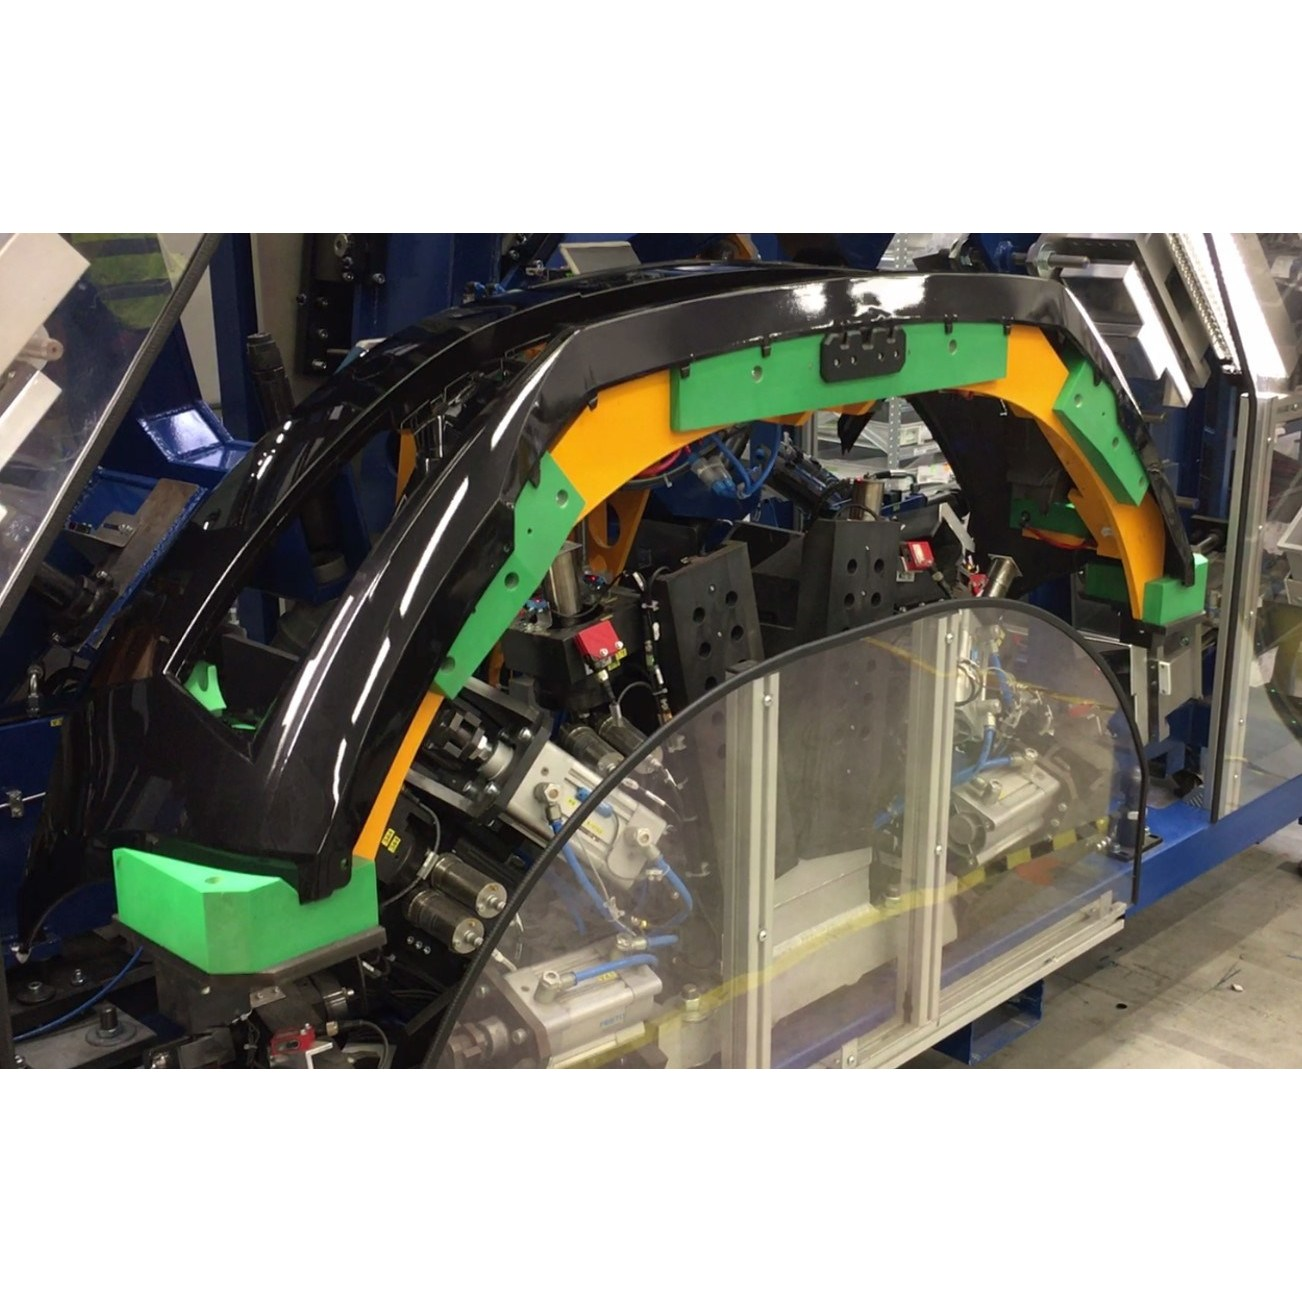 Automotive Supplier's Process Joins Thermoplastic